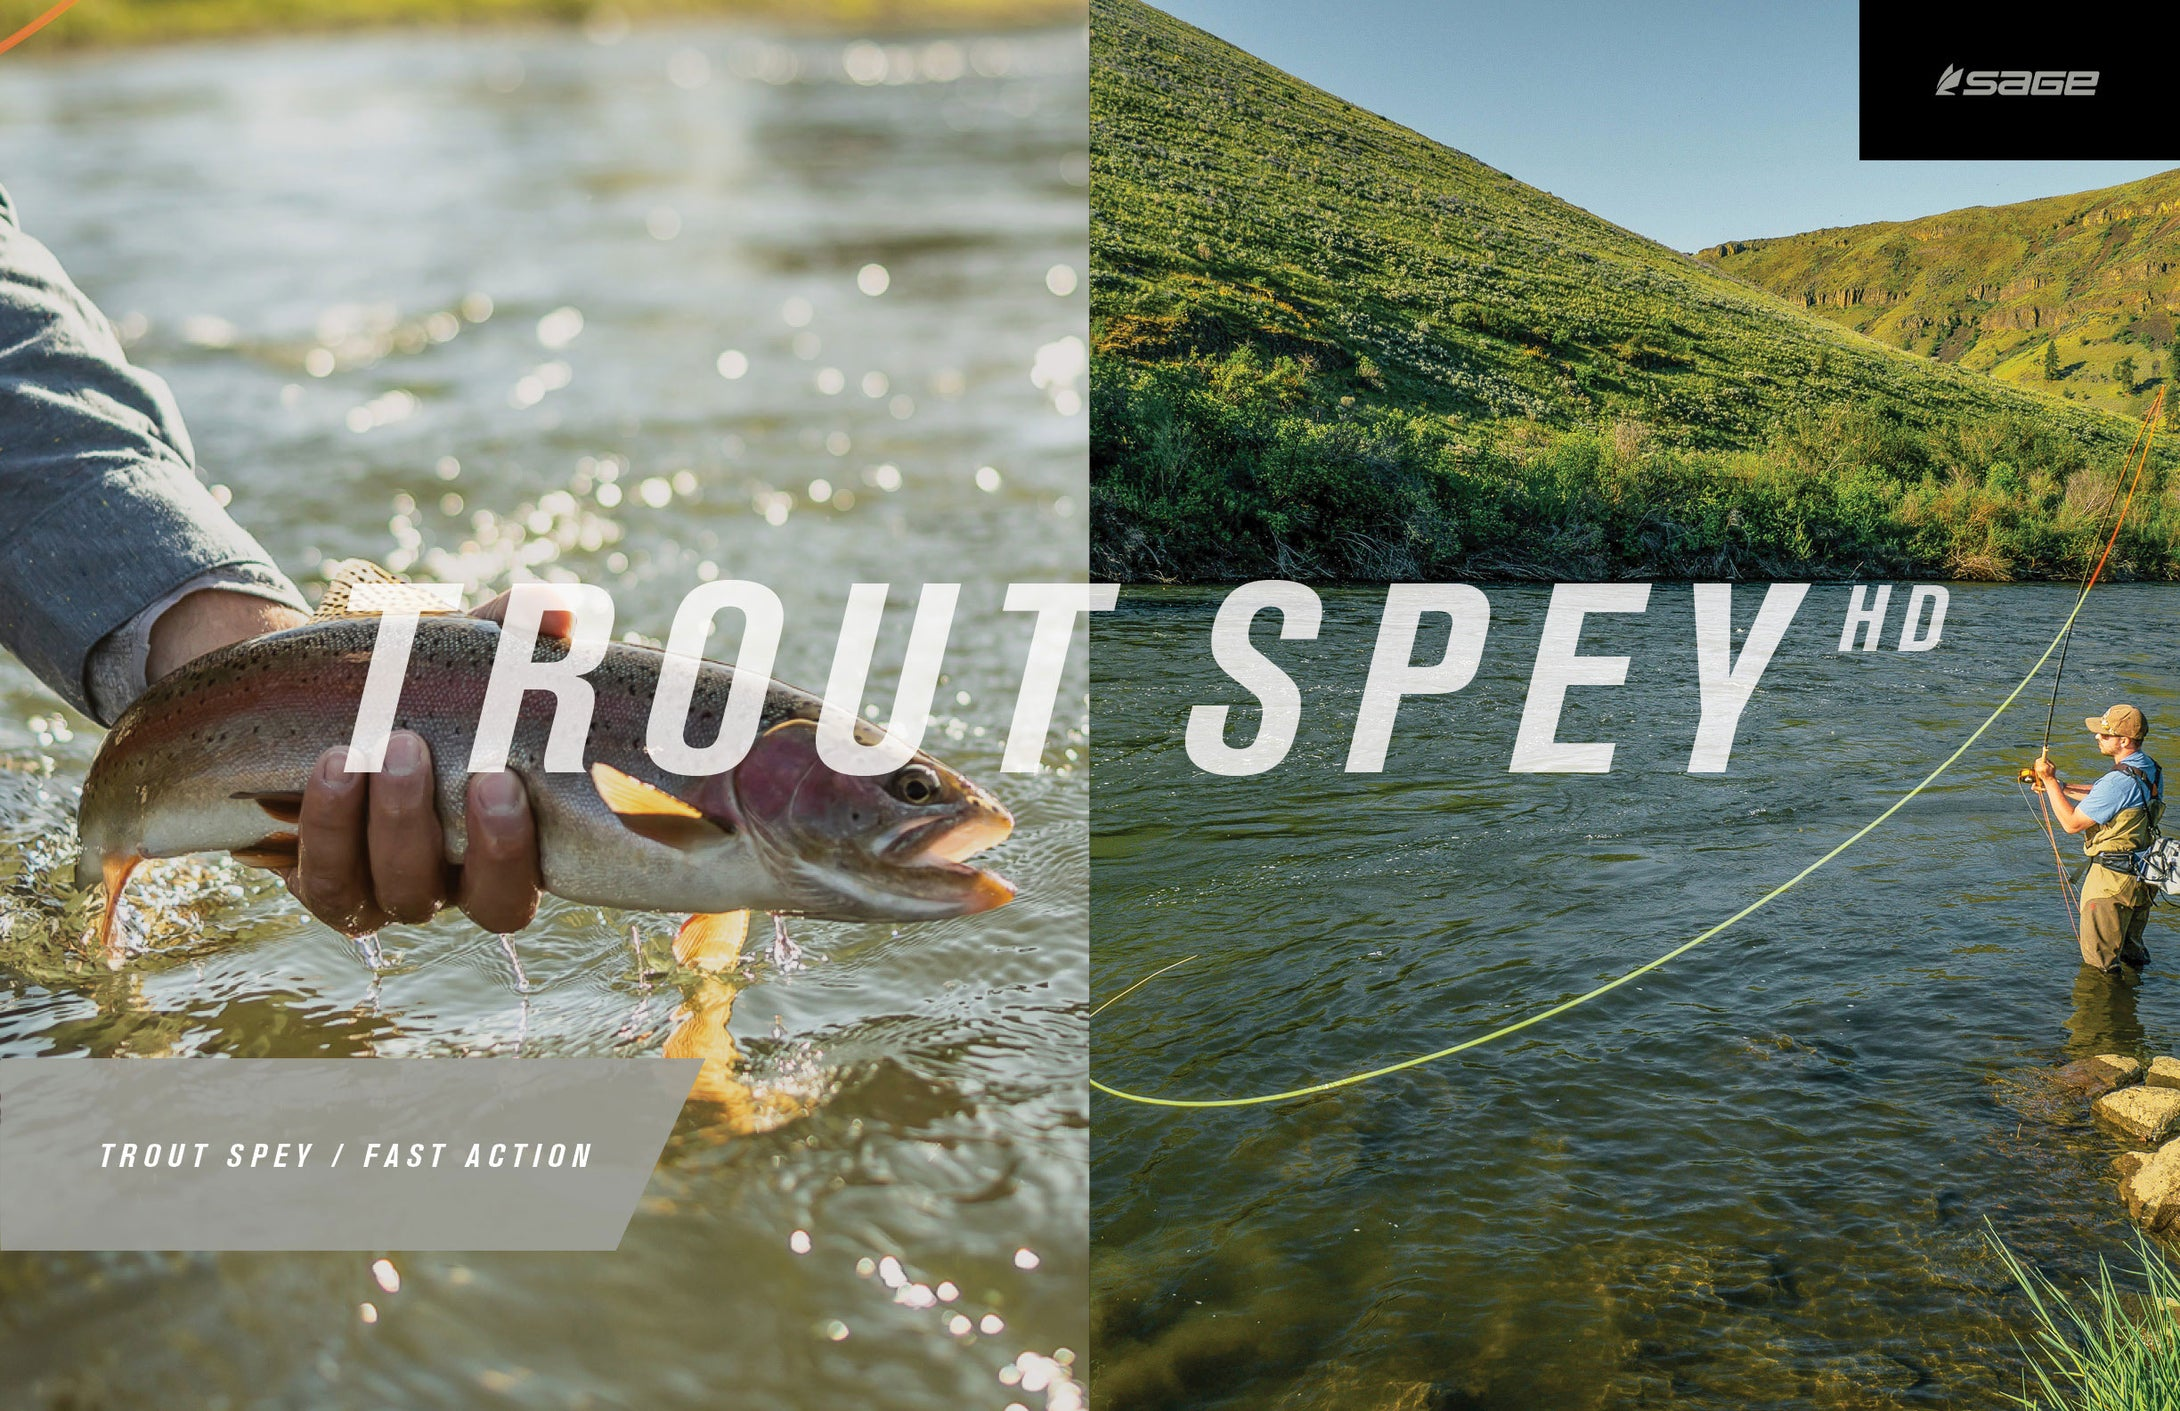 Sage TROUT SPEY HD Fly Rods - NEW!